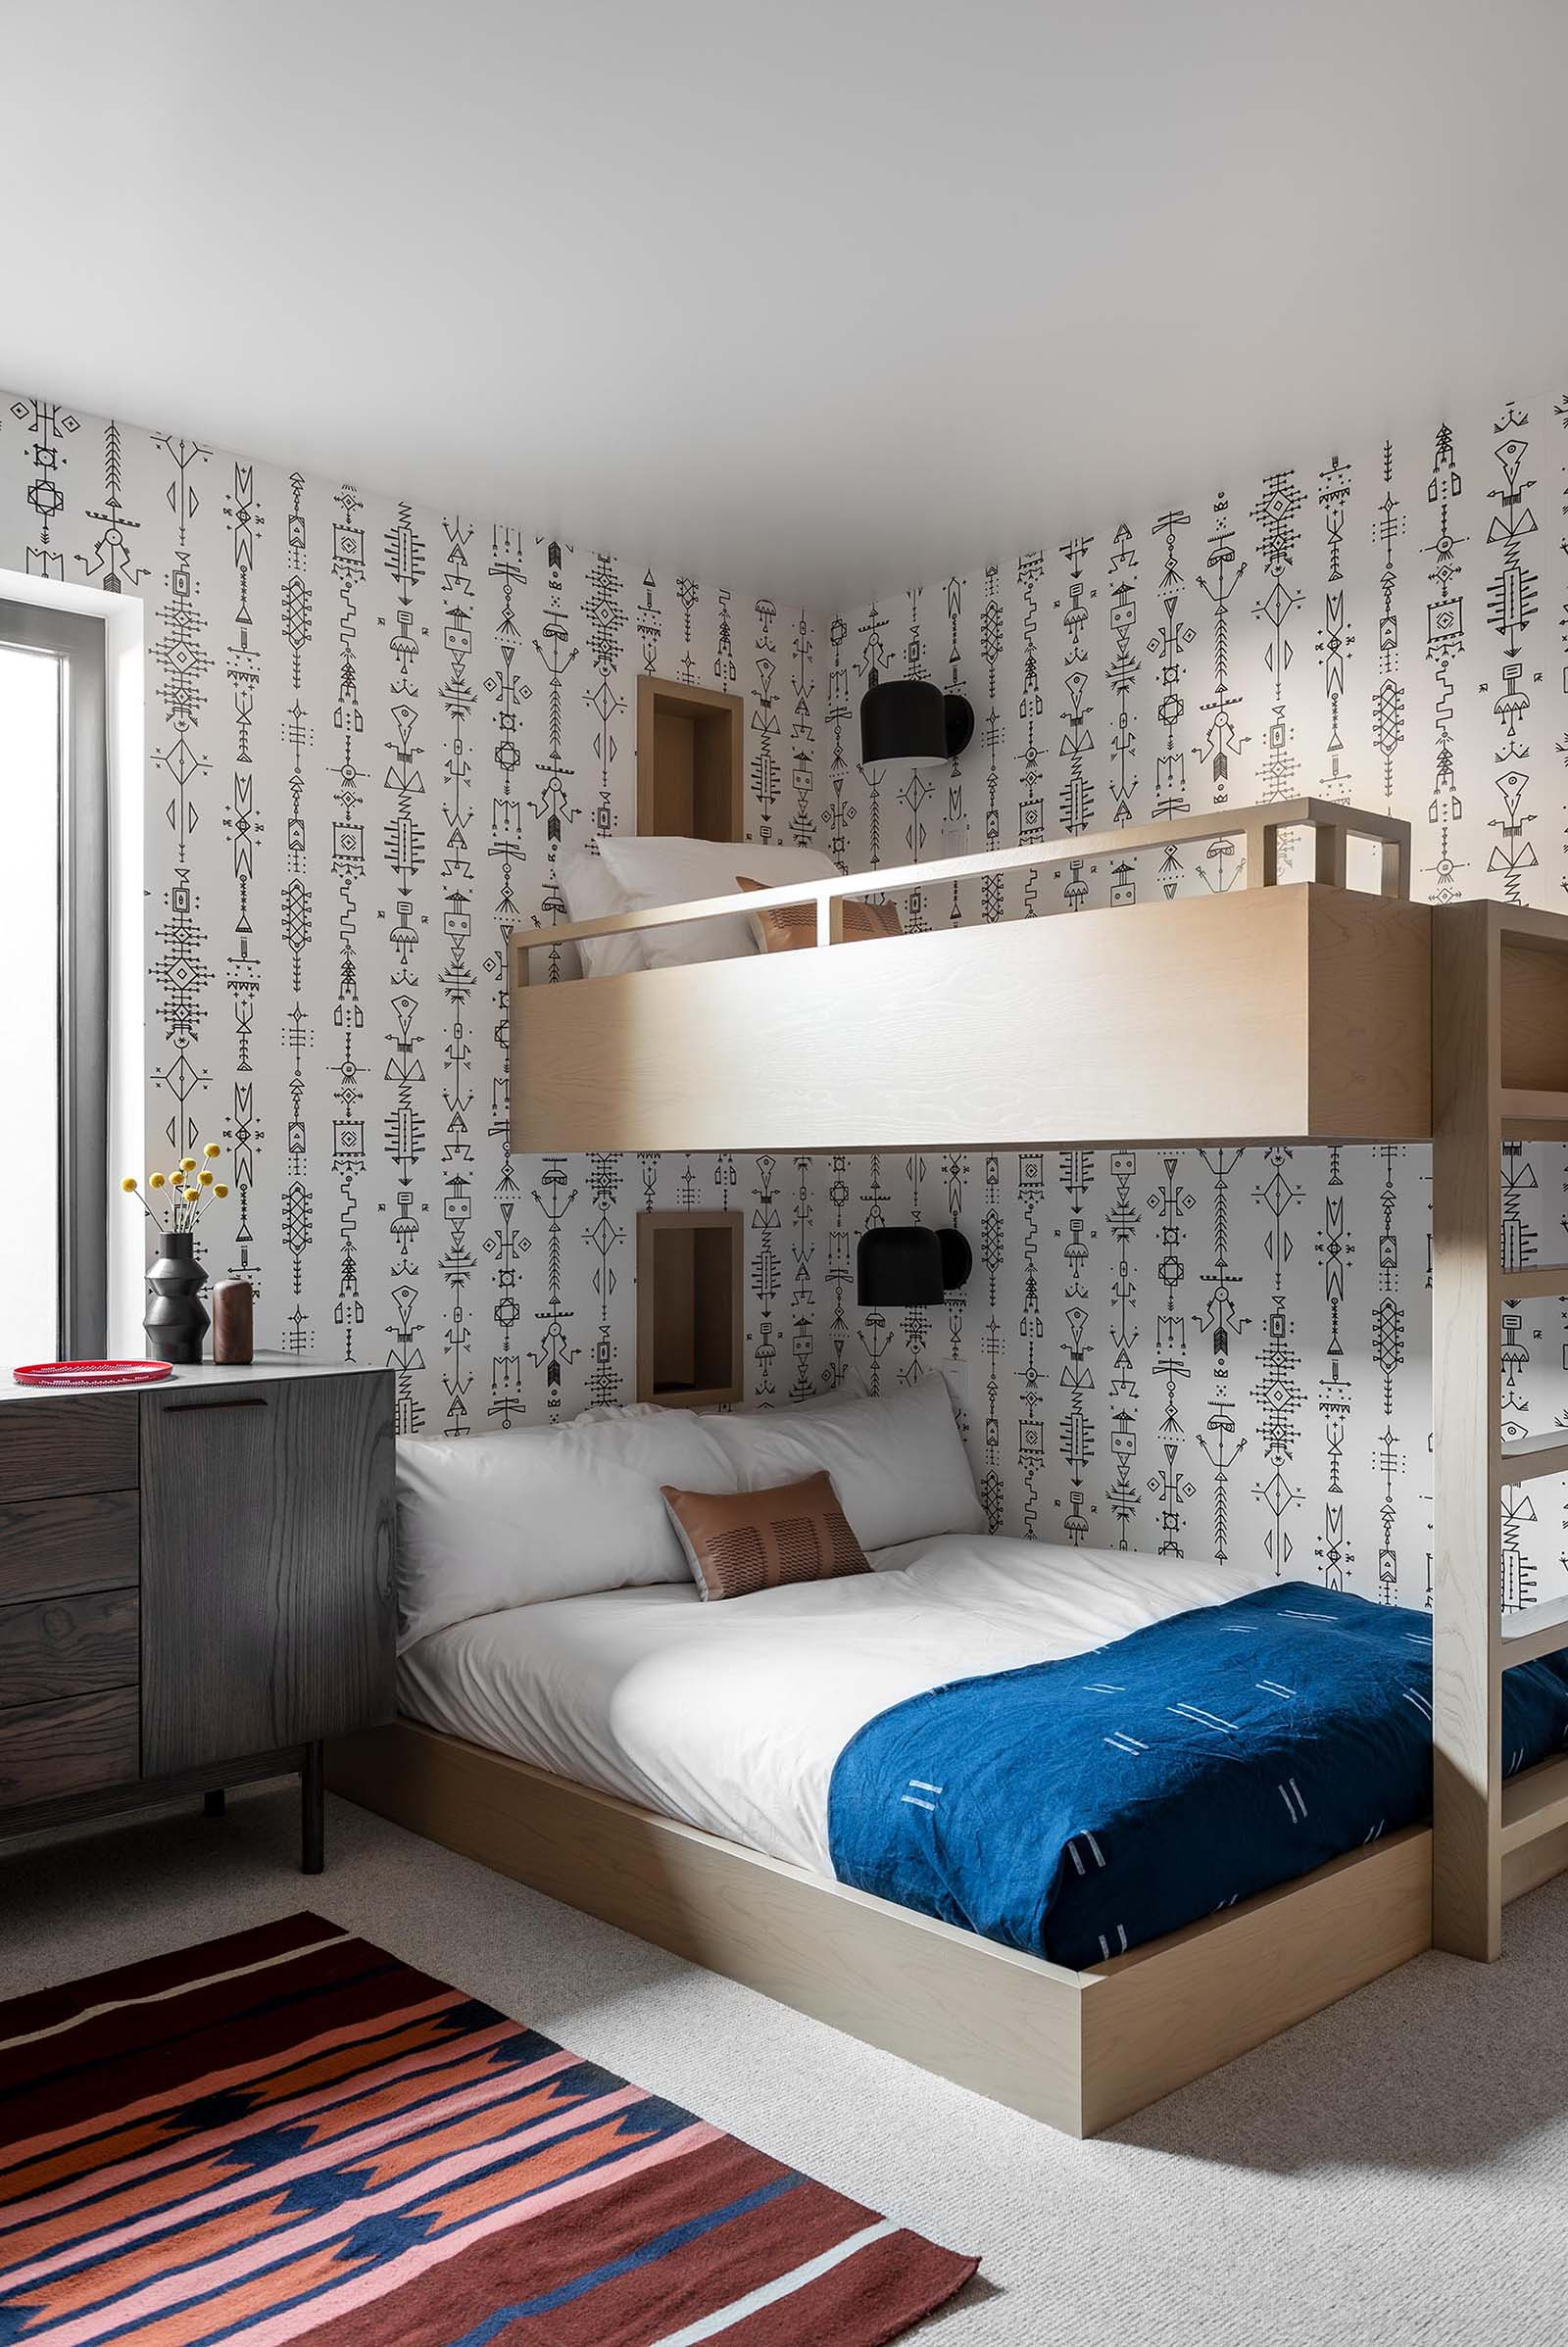 In this modern bedroom, a graphic wallpaper wraps around the room, while bunk beds are designed to sleep three people, and each bed has a small niche and wall mounted matte black light.